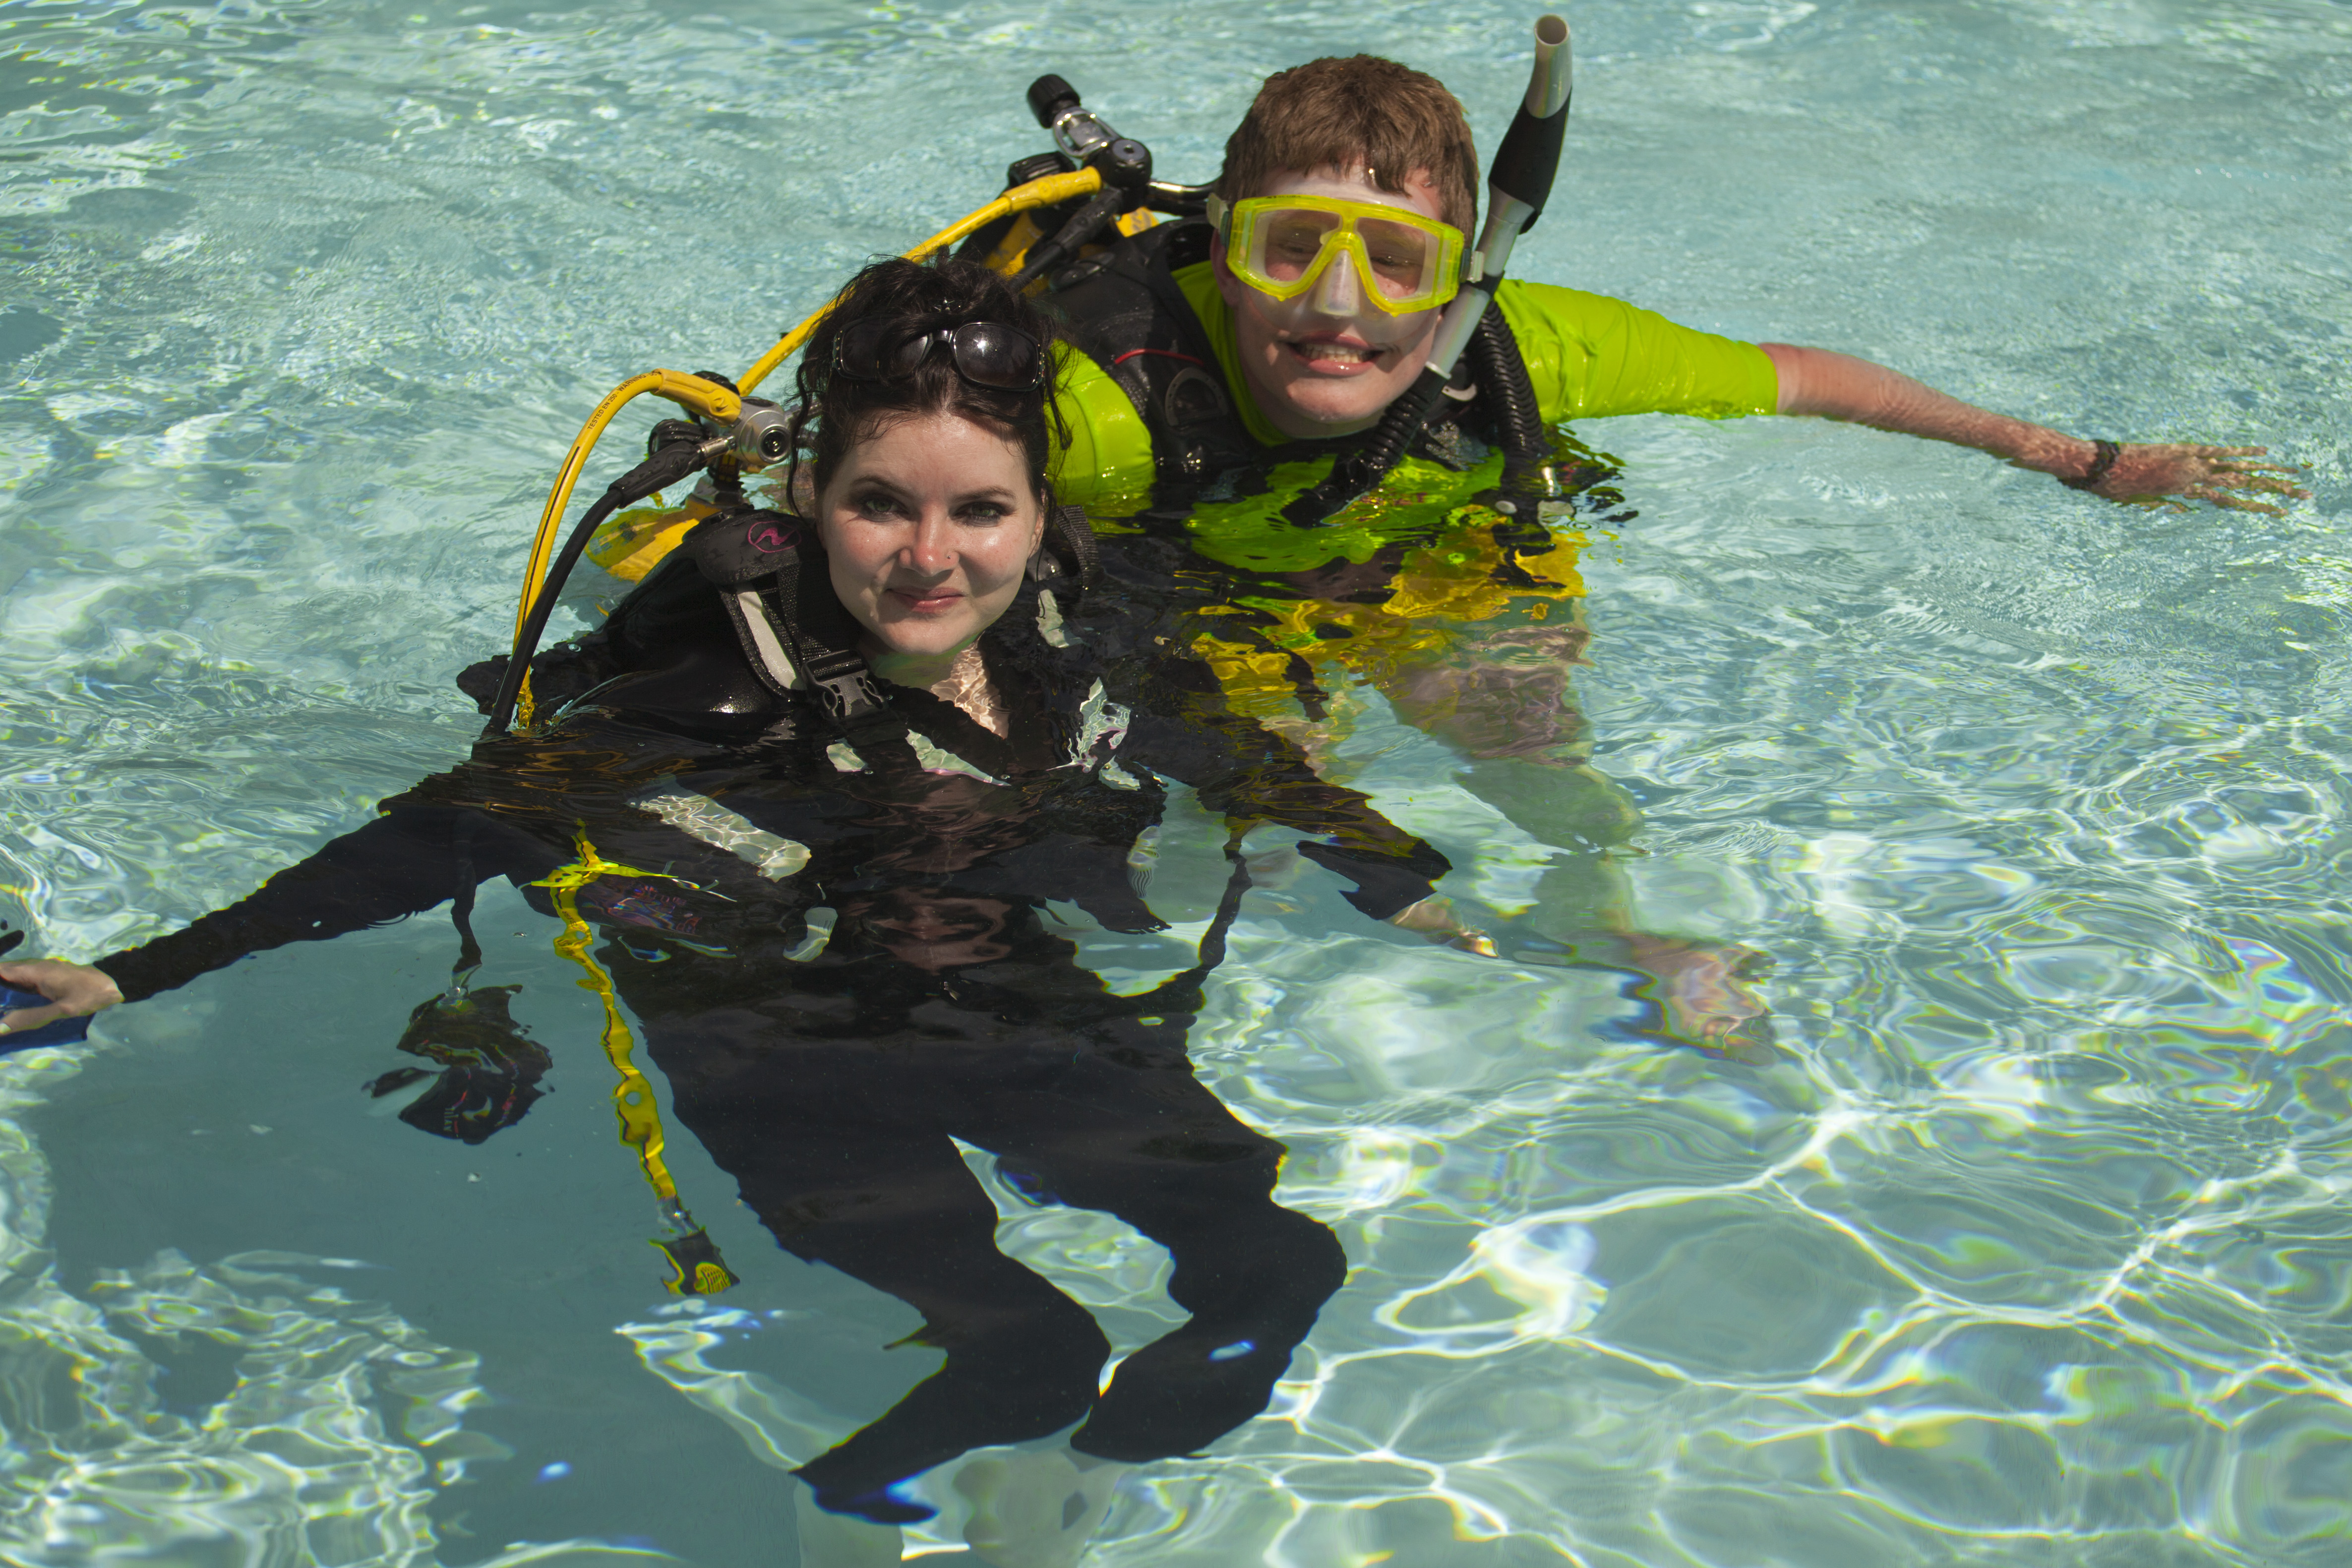 Weekend Dive Event To Showcase Diving With A Disability (Photo credit: The Cody Unser First Step Foundation & PADI)